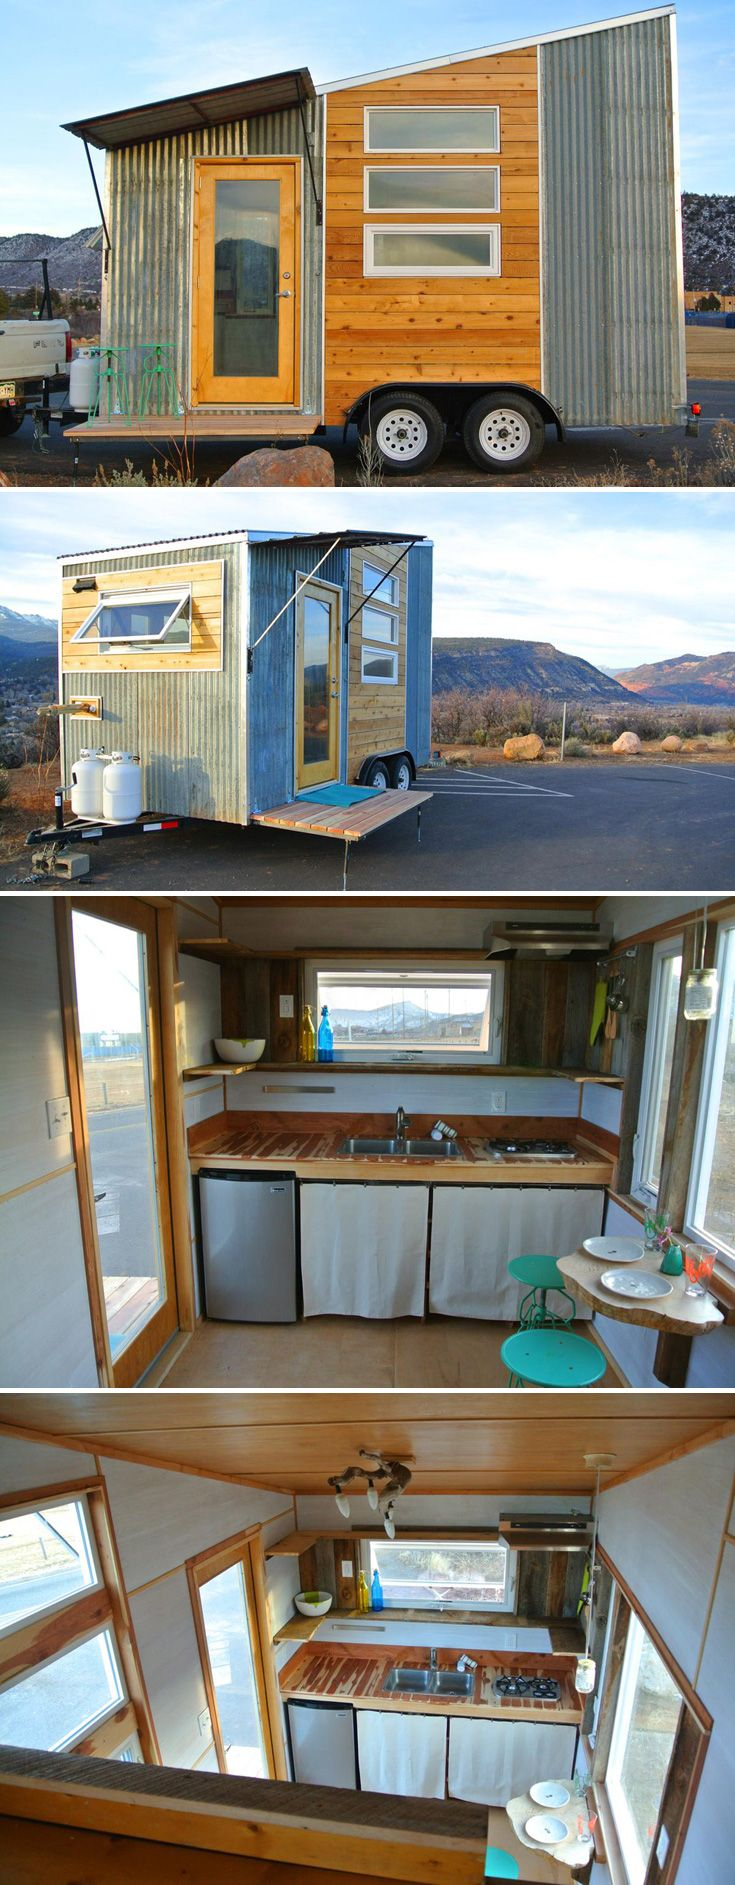 17 Best ideas about Tiny House Trailer on Pinterest Mini homes